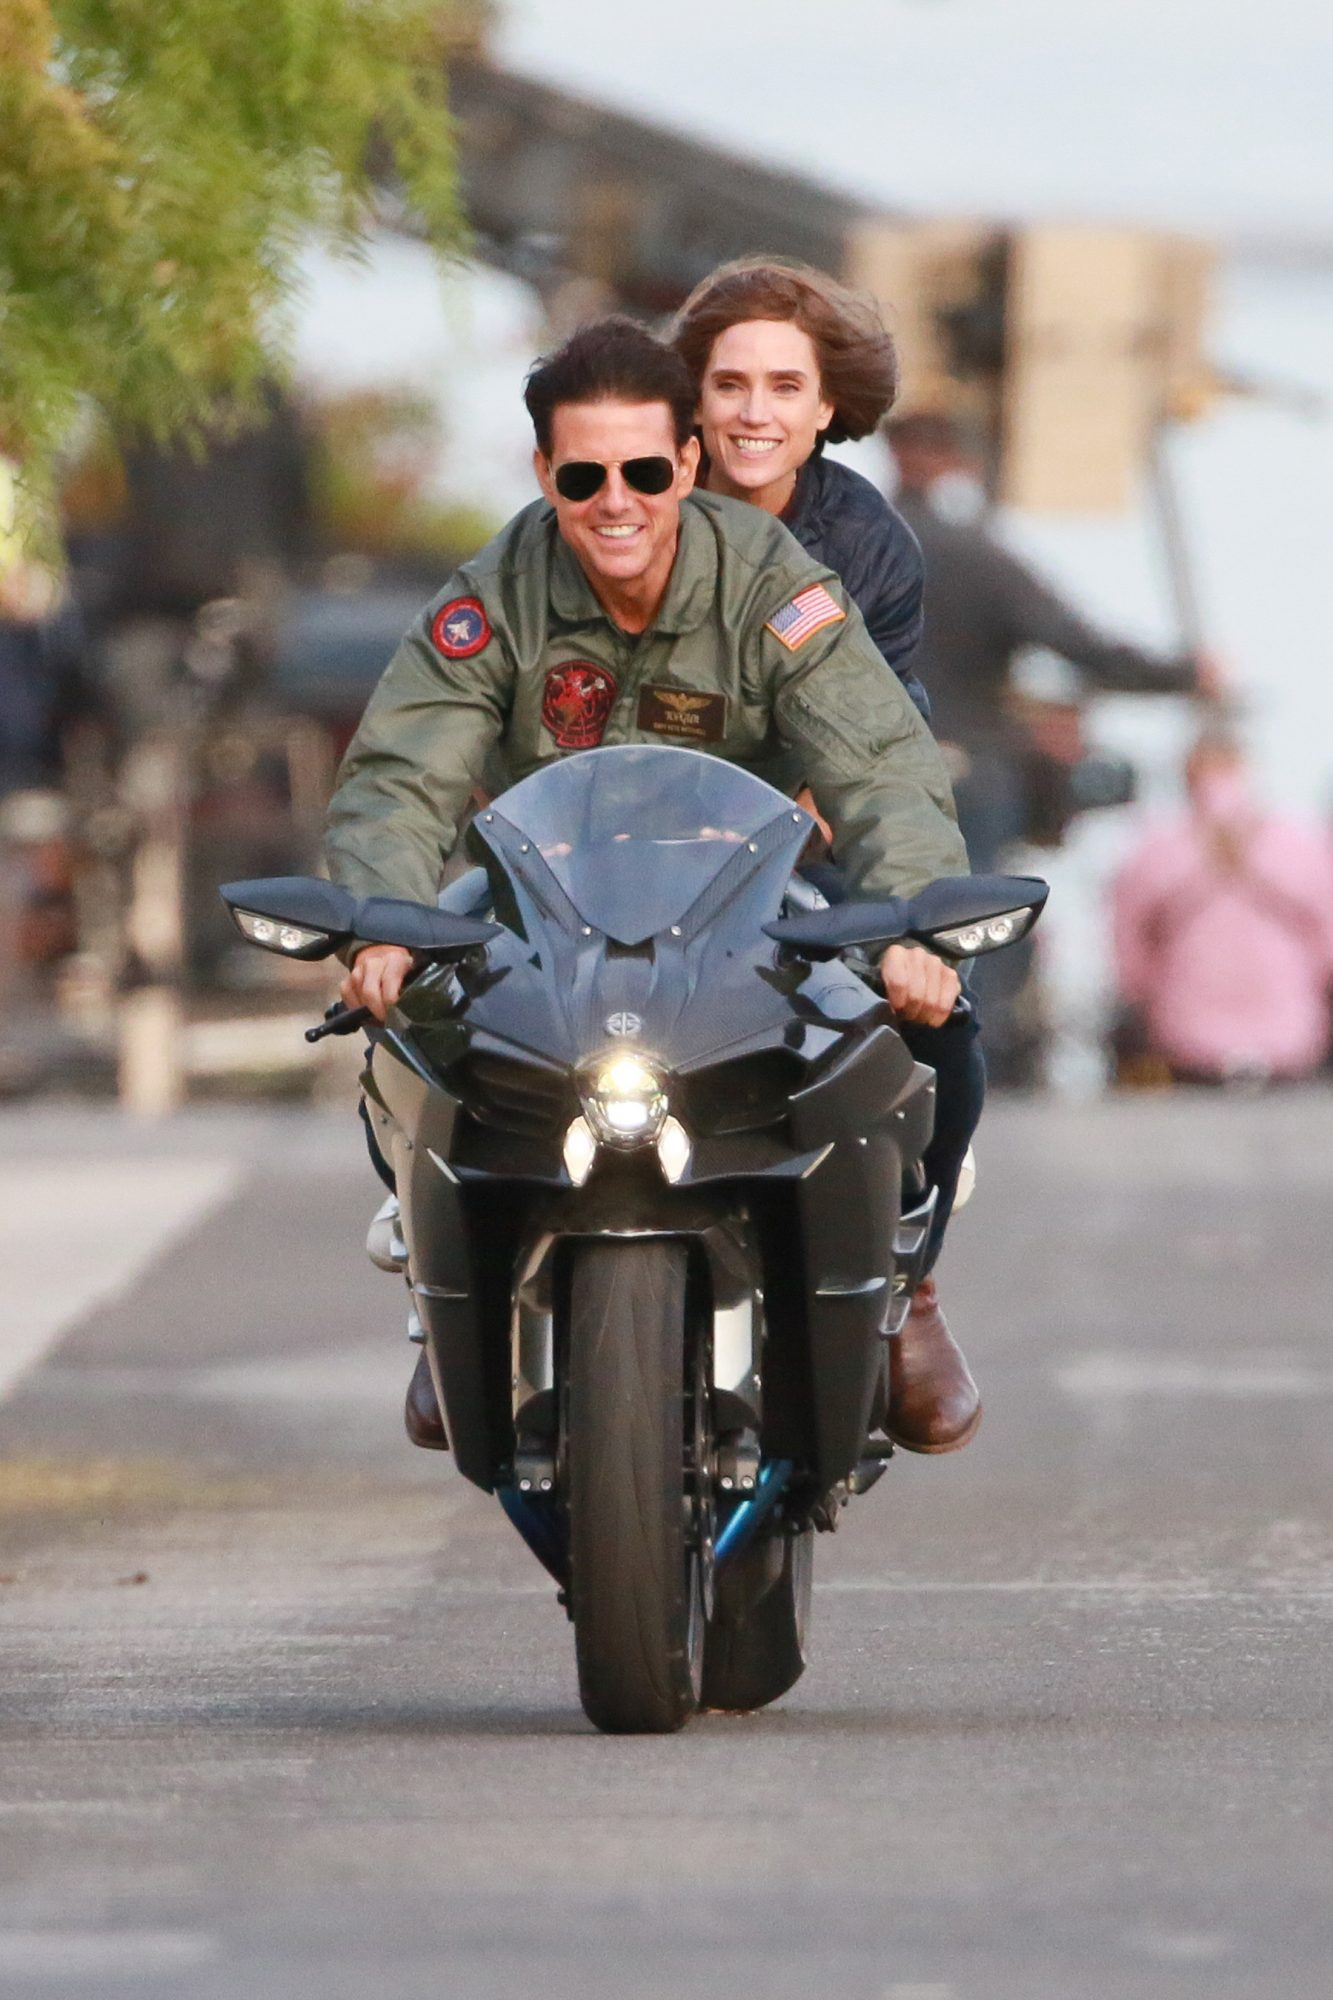 Top Gun: Maverick Star Jennifer Connelly Says Tom Cruise Helped Her Get Over Her 'Crippling Fear' of Flying